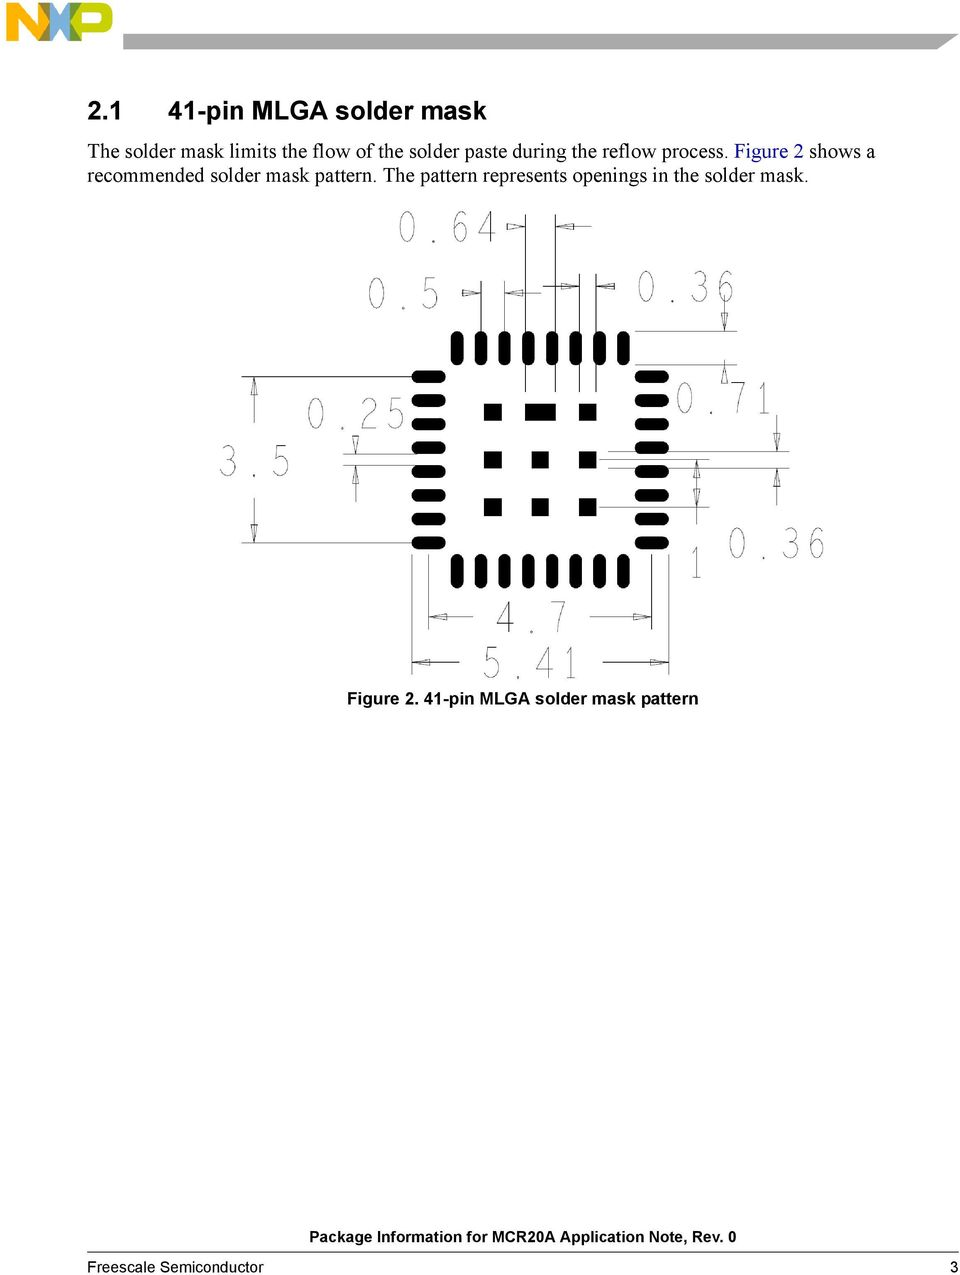 Figure 2 shows a recommended solder mask pattern.